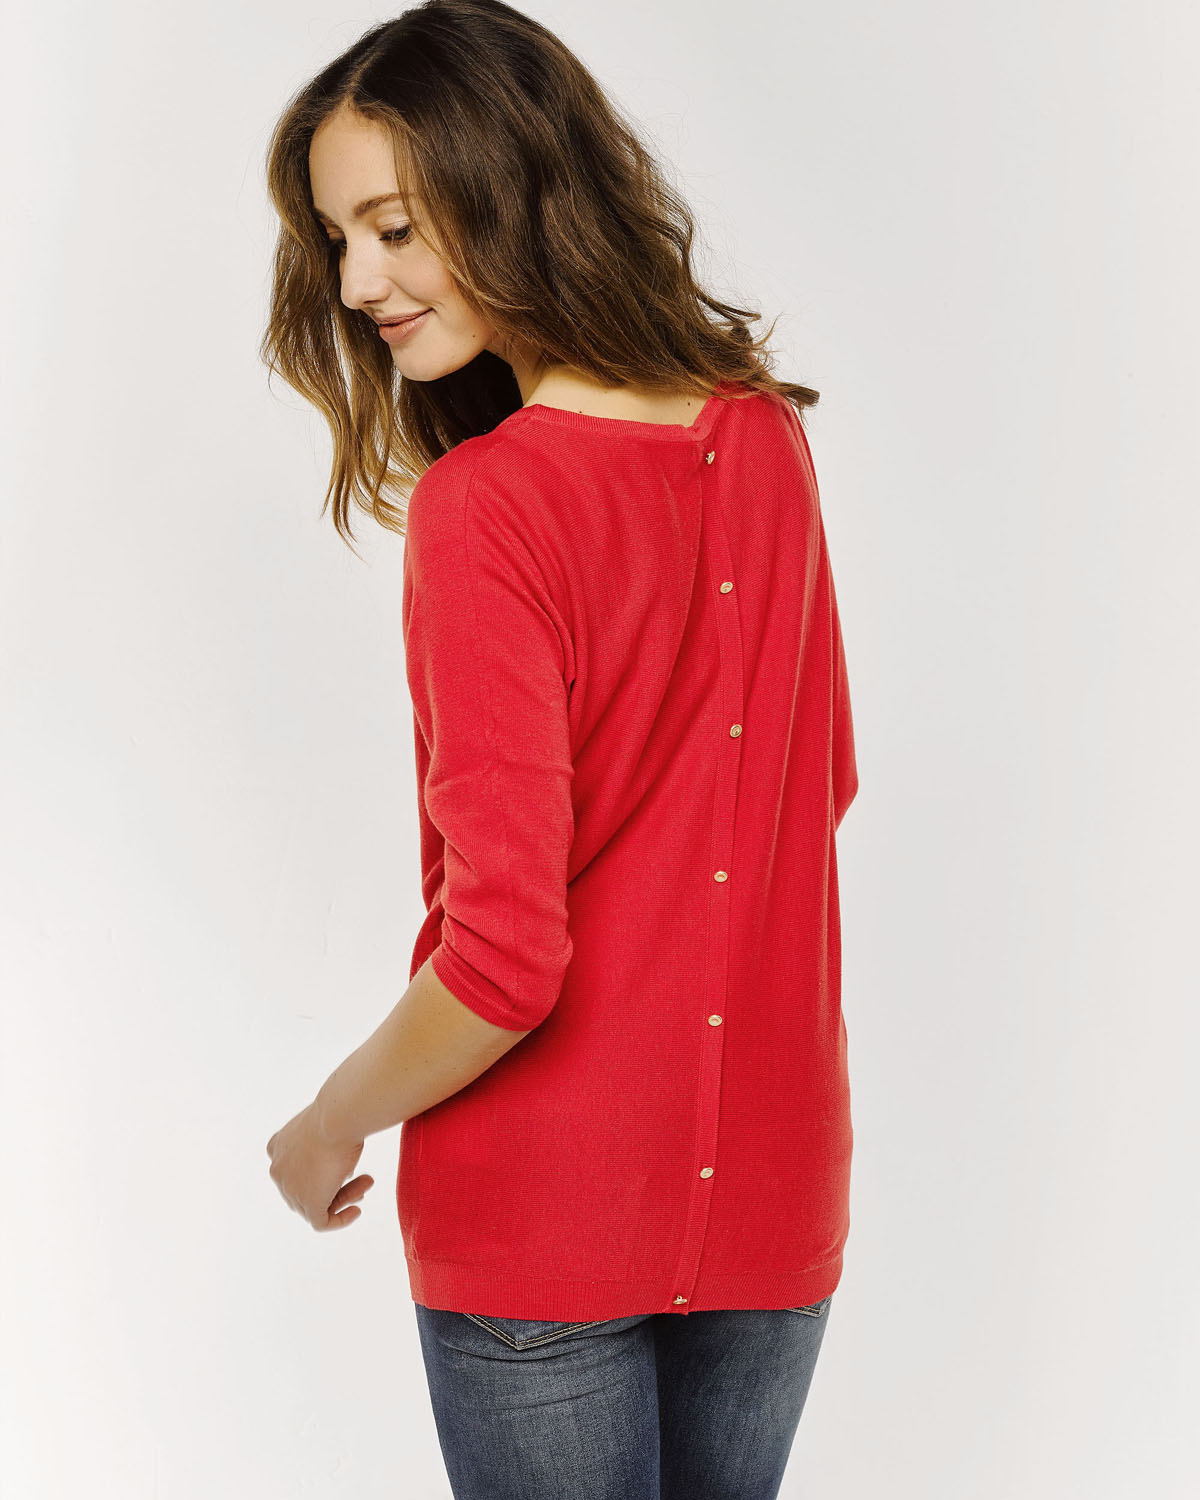 Trui Rood Dames.Dames Oversized Knit Trui 78671911 We Fashion